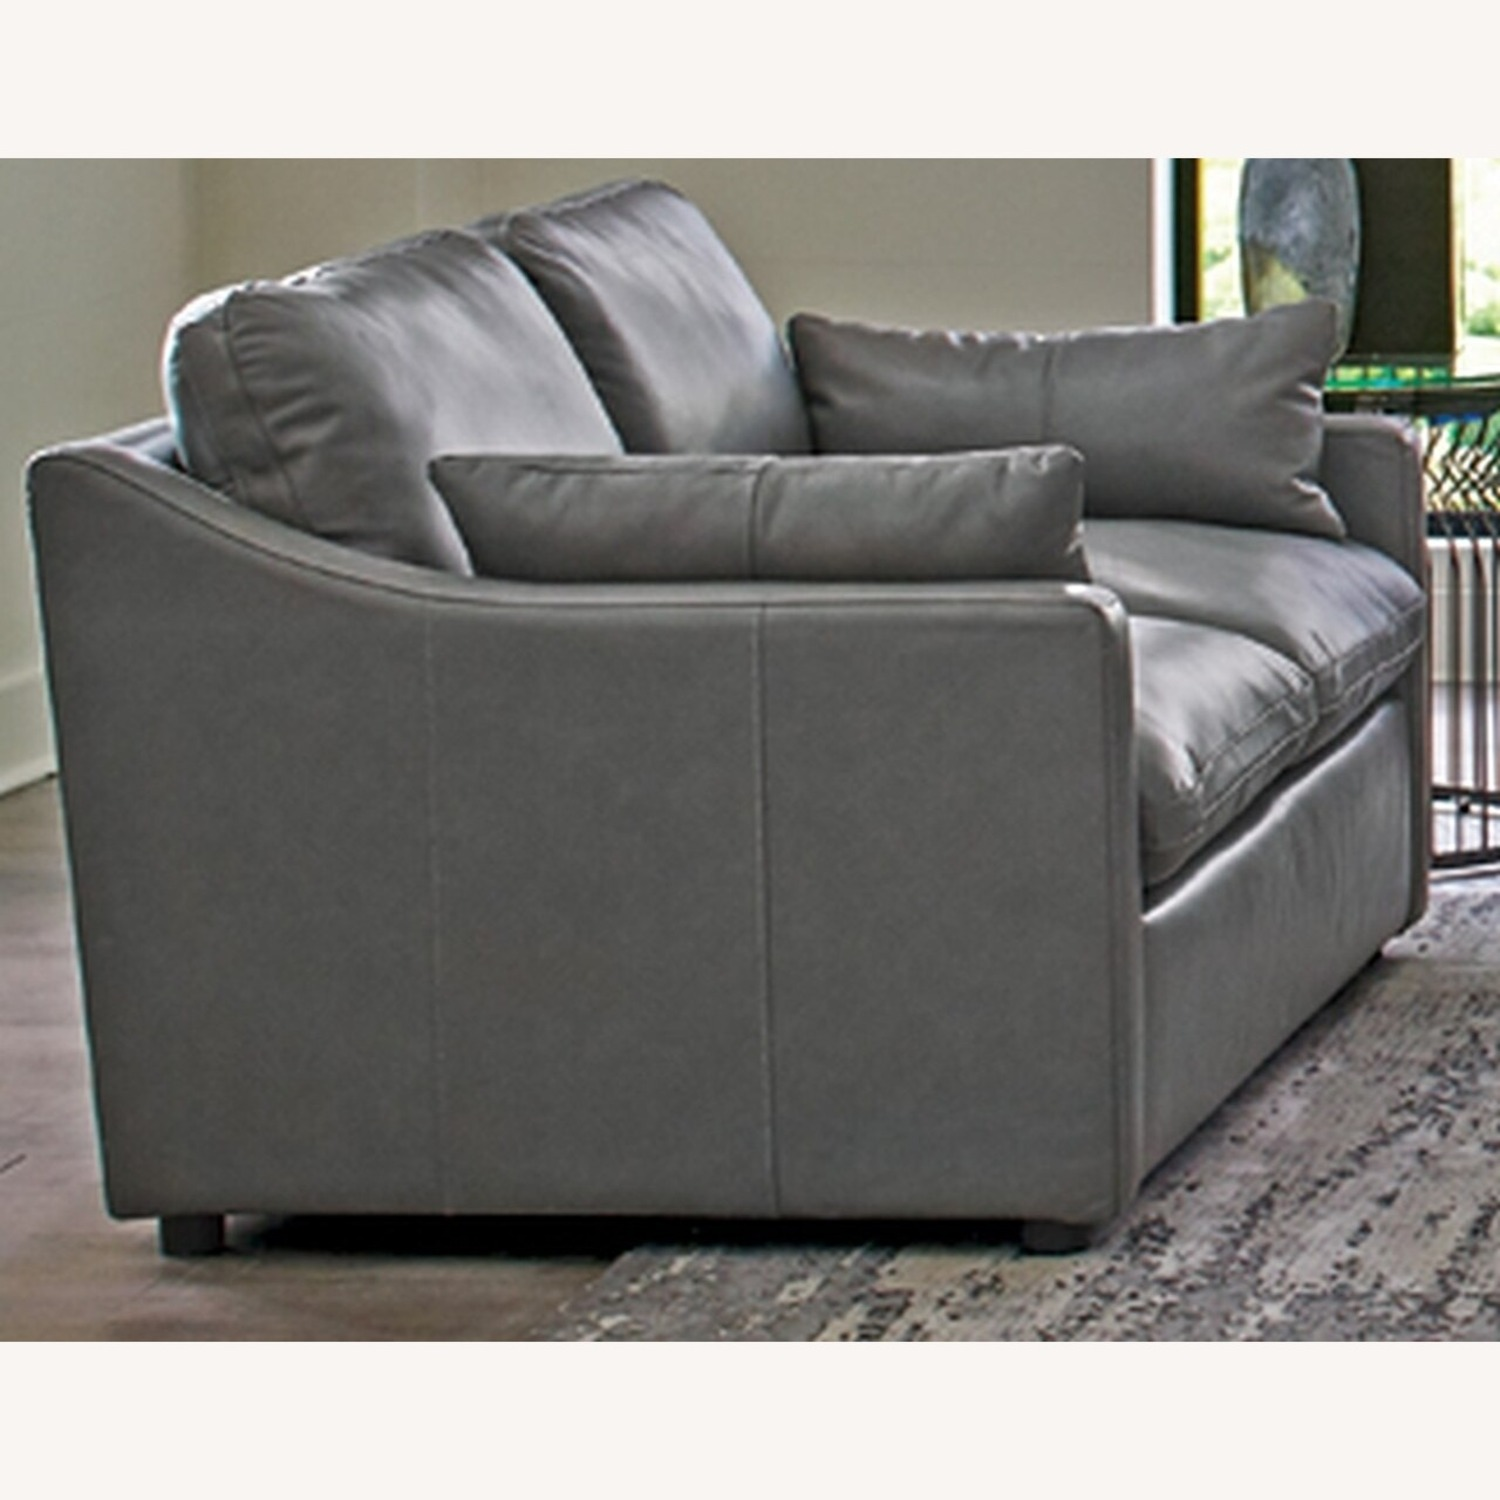 Loveseat In Grey Leatherette Upholstery - image-0